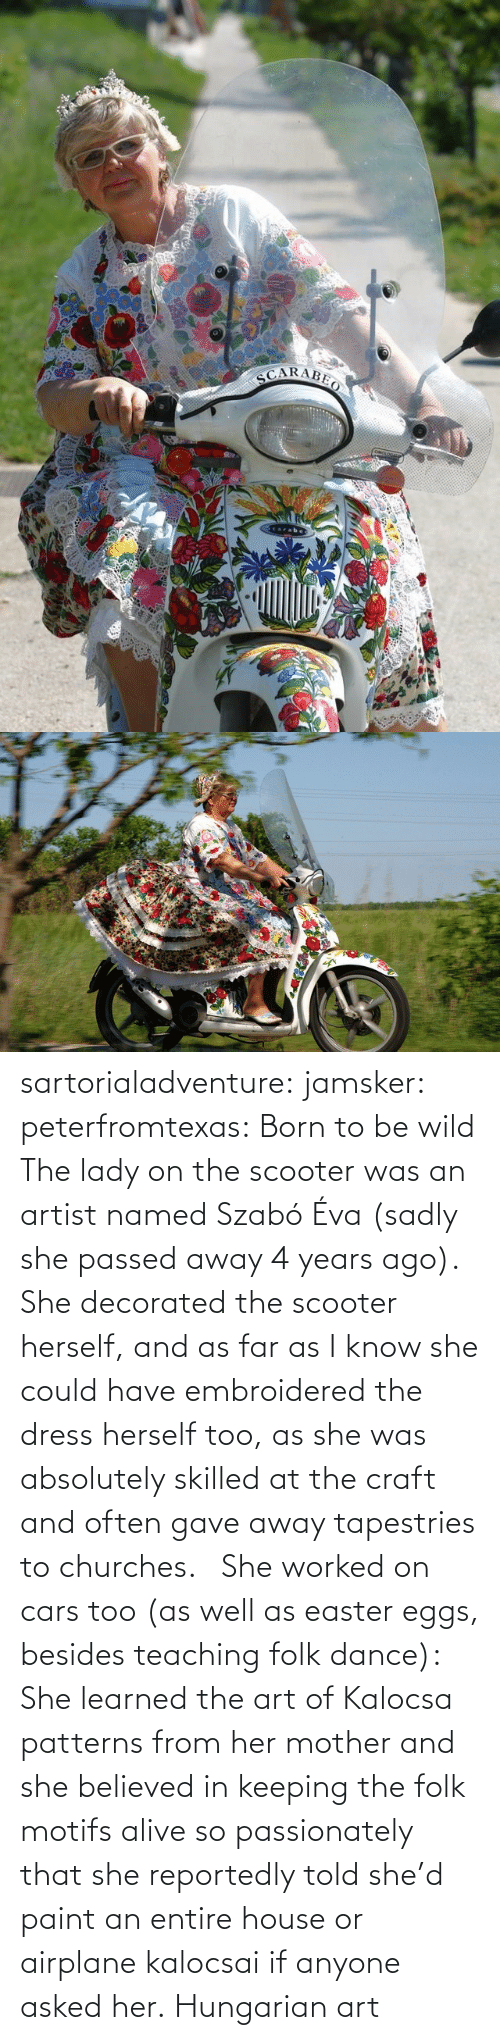 png: sartorialadventure: jamsker:  peterfromtexas: Born to be wild The lady on the scooter was an artist named Szabó Éva (sadly she passed away 4 years ago). She decorated the scooter herself, and as far as I know she could have embroidered the dress herself too, as she was absolutely skilled at the craft and often gave away tapestries to churches.   She worked on cars too (as well as easter eggs, besides teaching folk dance): She learned the art of Kalocsa patterns from her mother and she believed in keeping the folk motifs alive so passionately that she reportedly told she'd paint an entire house or airplane kalocsai if anyone asked her.  Hungarian art